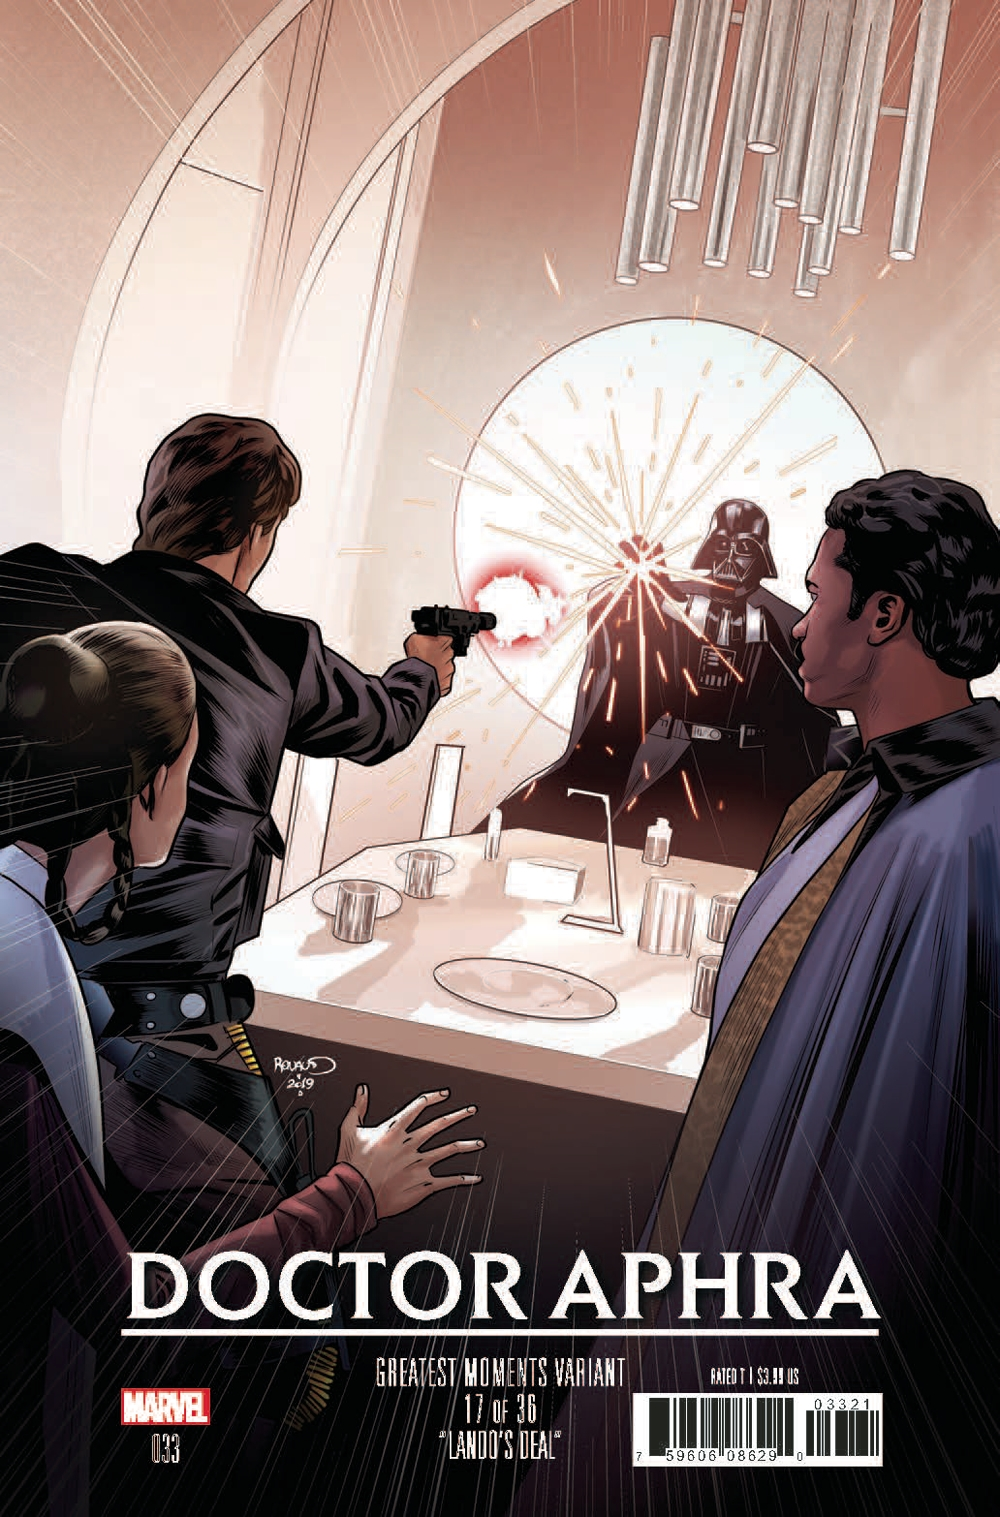 Doctor Aphra #33 (Paul Renaud Greatest Moments Variant Cover 17 of 36) (19.06.2019)